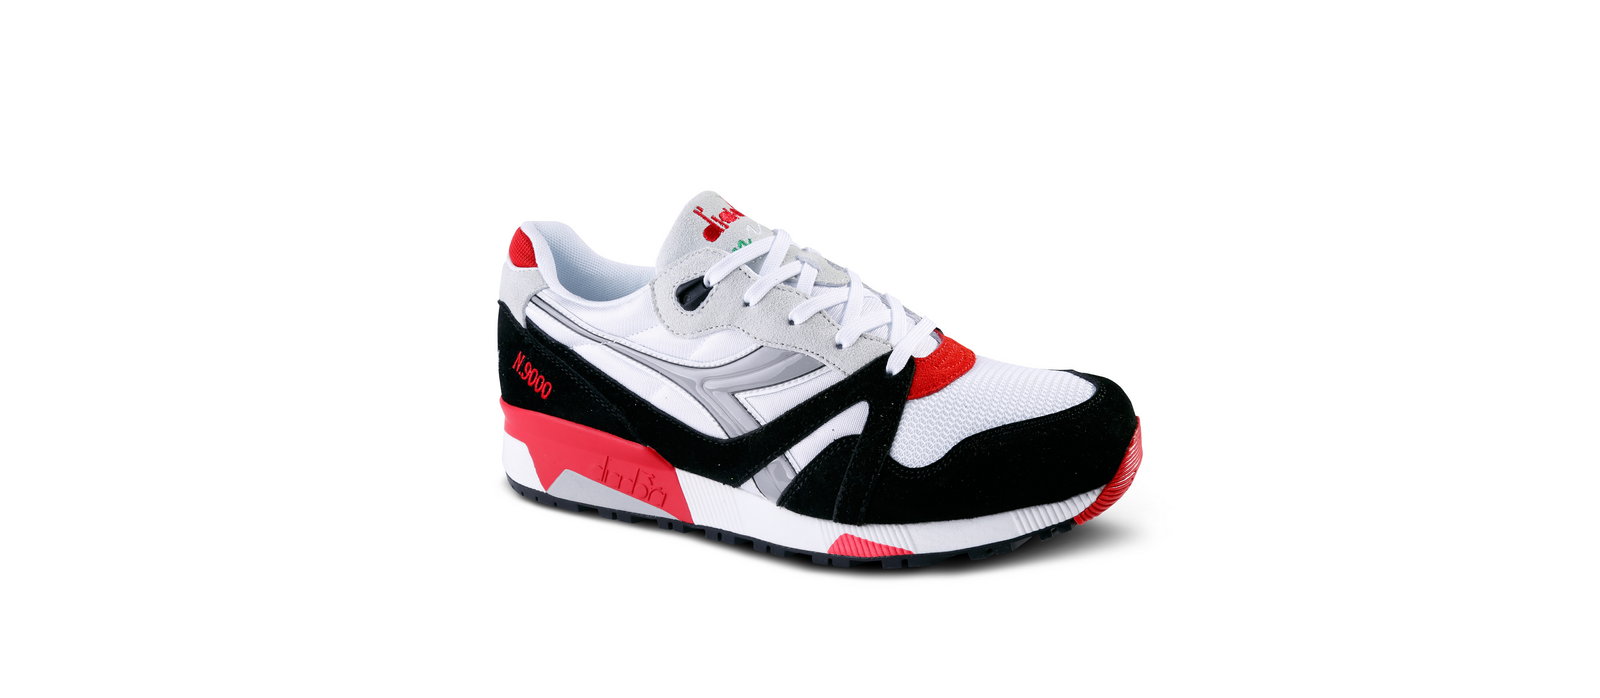 diadora, diadora n9000, n9000, sneakers, sneakers diadora, sneakers n9000, sneakers diadora n90000, du dessin aux podiums, dudessinauxpodiums, running, sneakers running, sport shoes, sneaker, runing, top running shoes